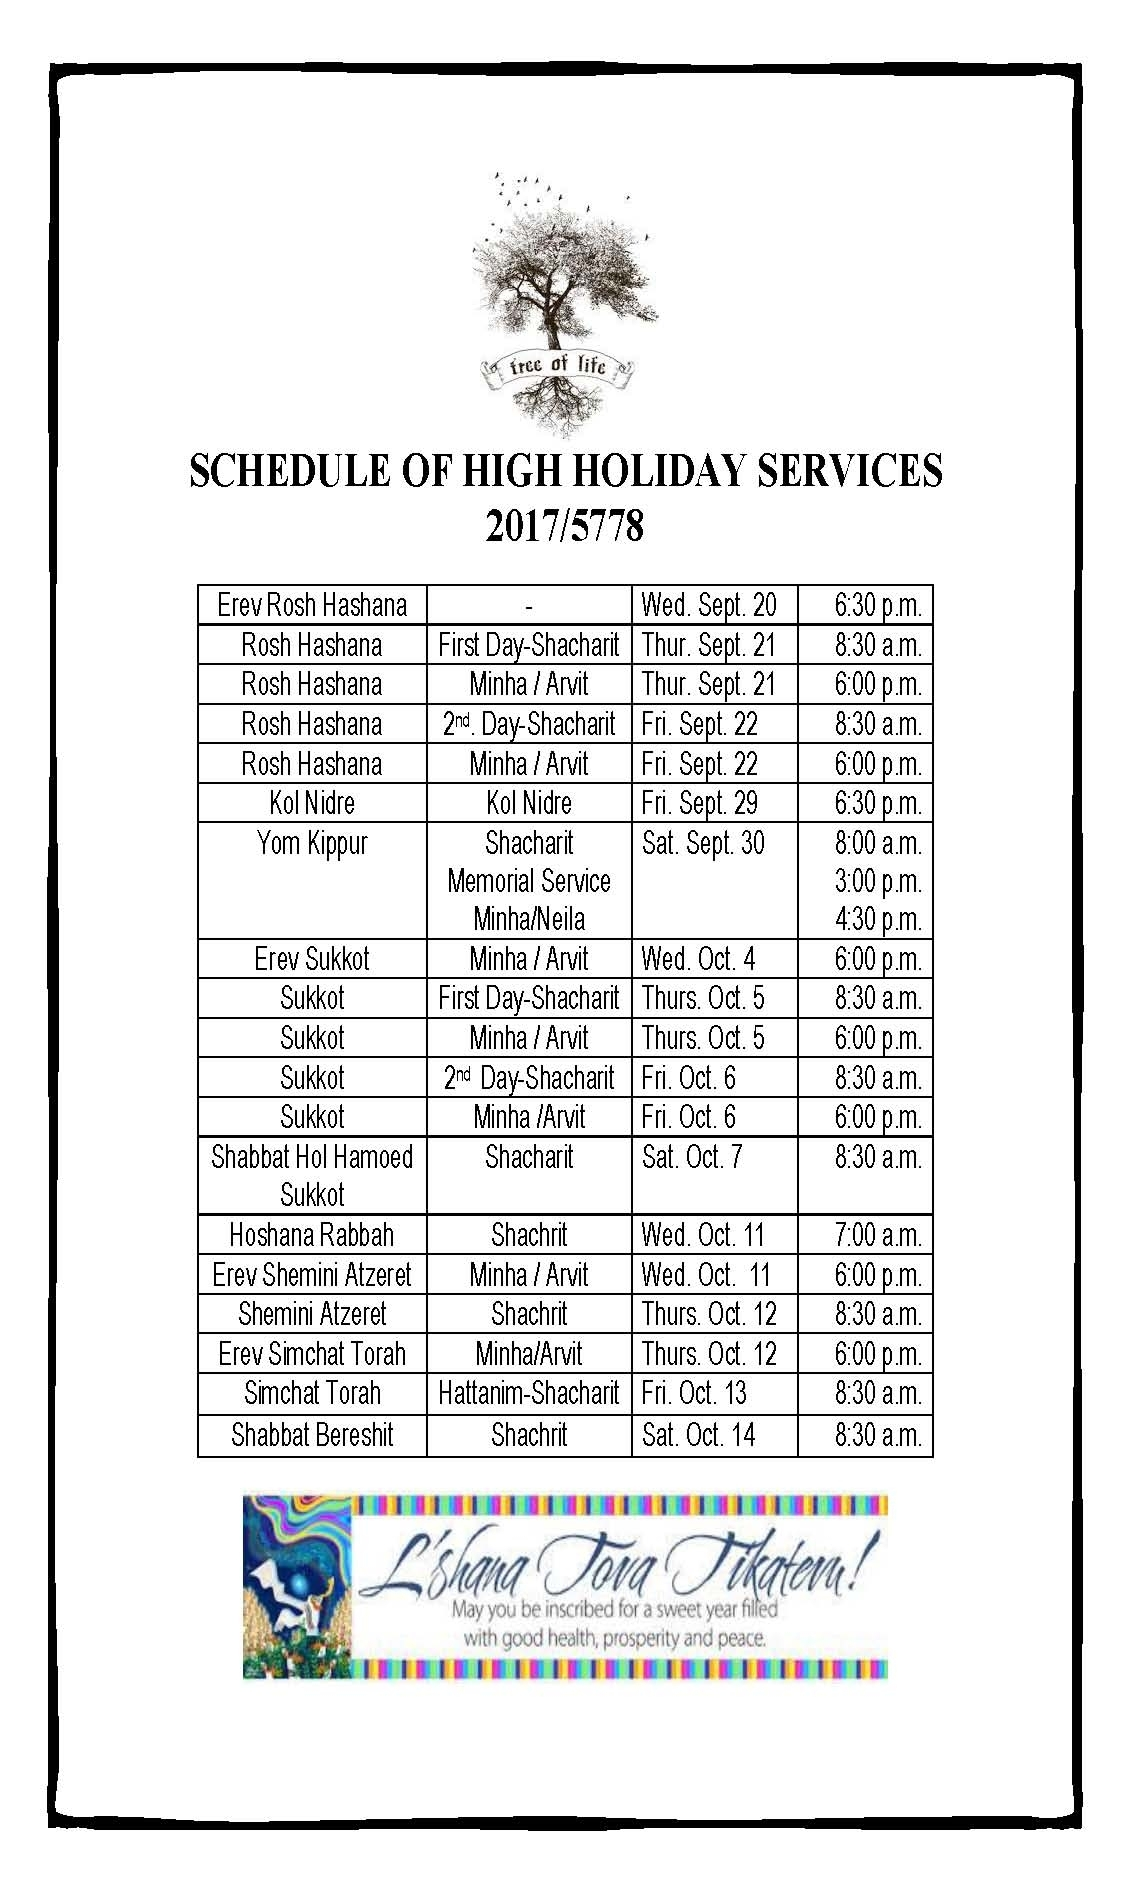 Sephardic Temple – Schedule Of High Holiday Services